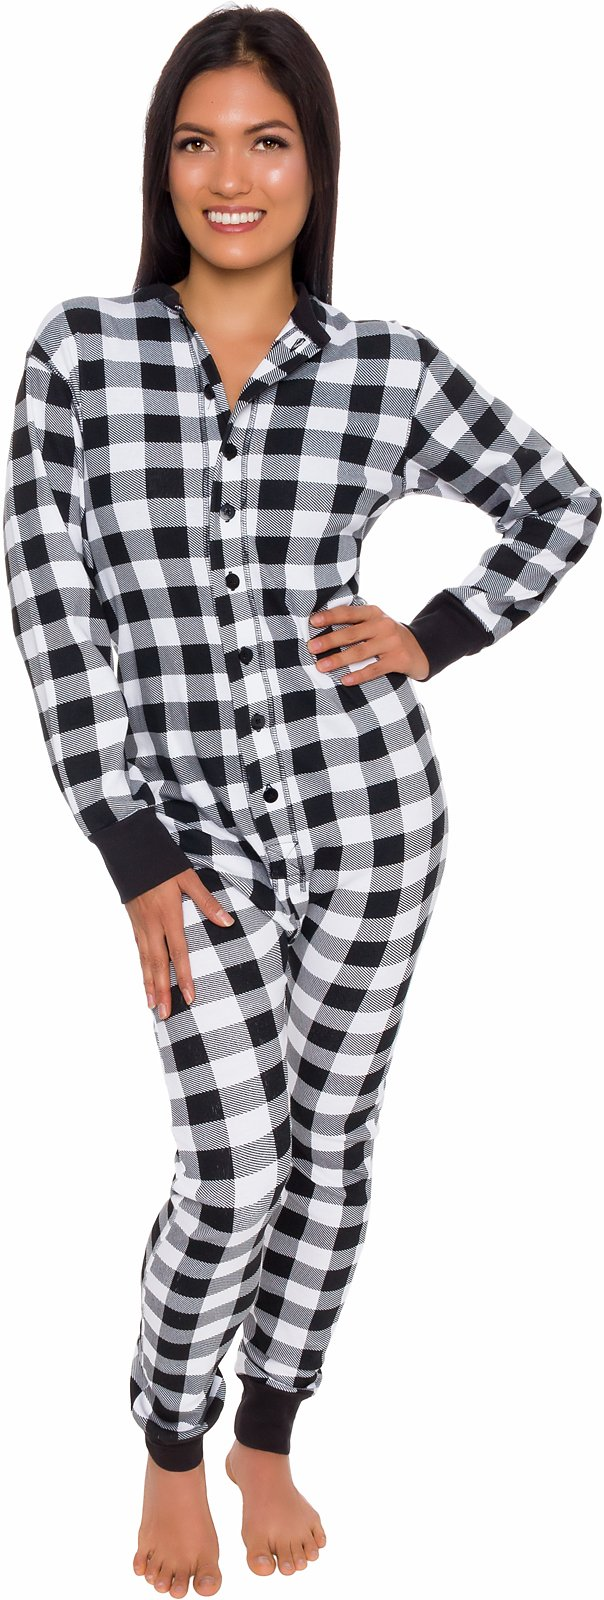 Silver Lilly Buffalo Plaid Womens One Piece Pajamas - Adult Unisex Union Suit with Drop Seat Butt Flap